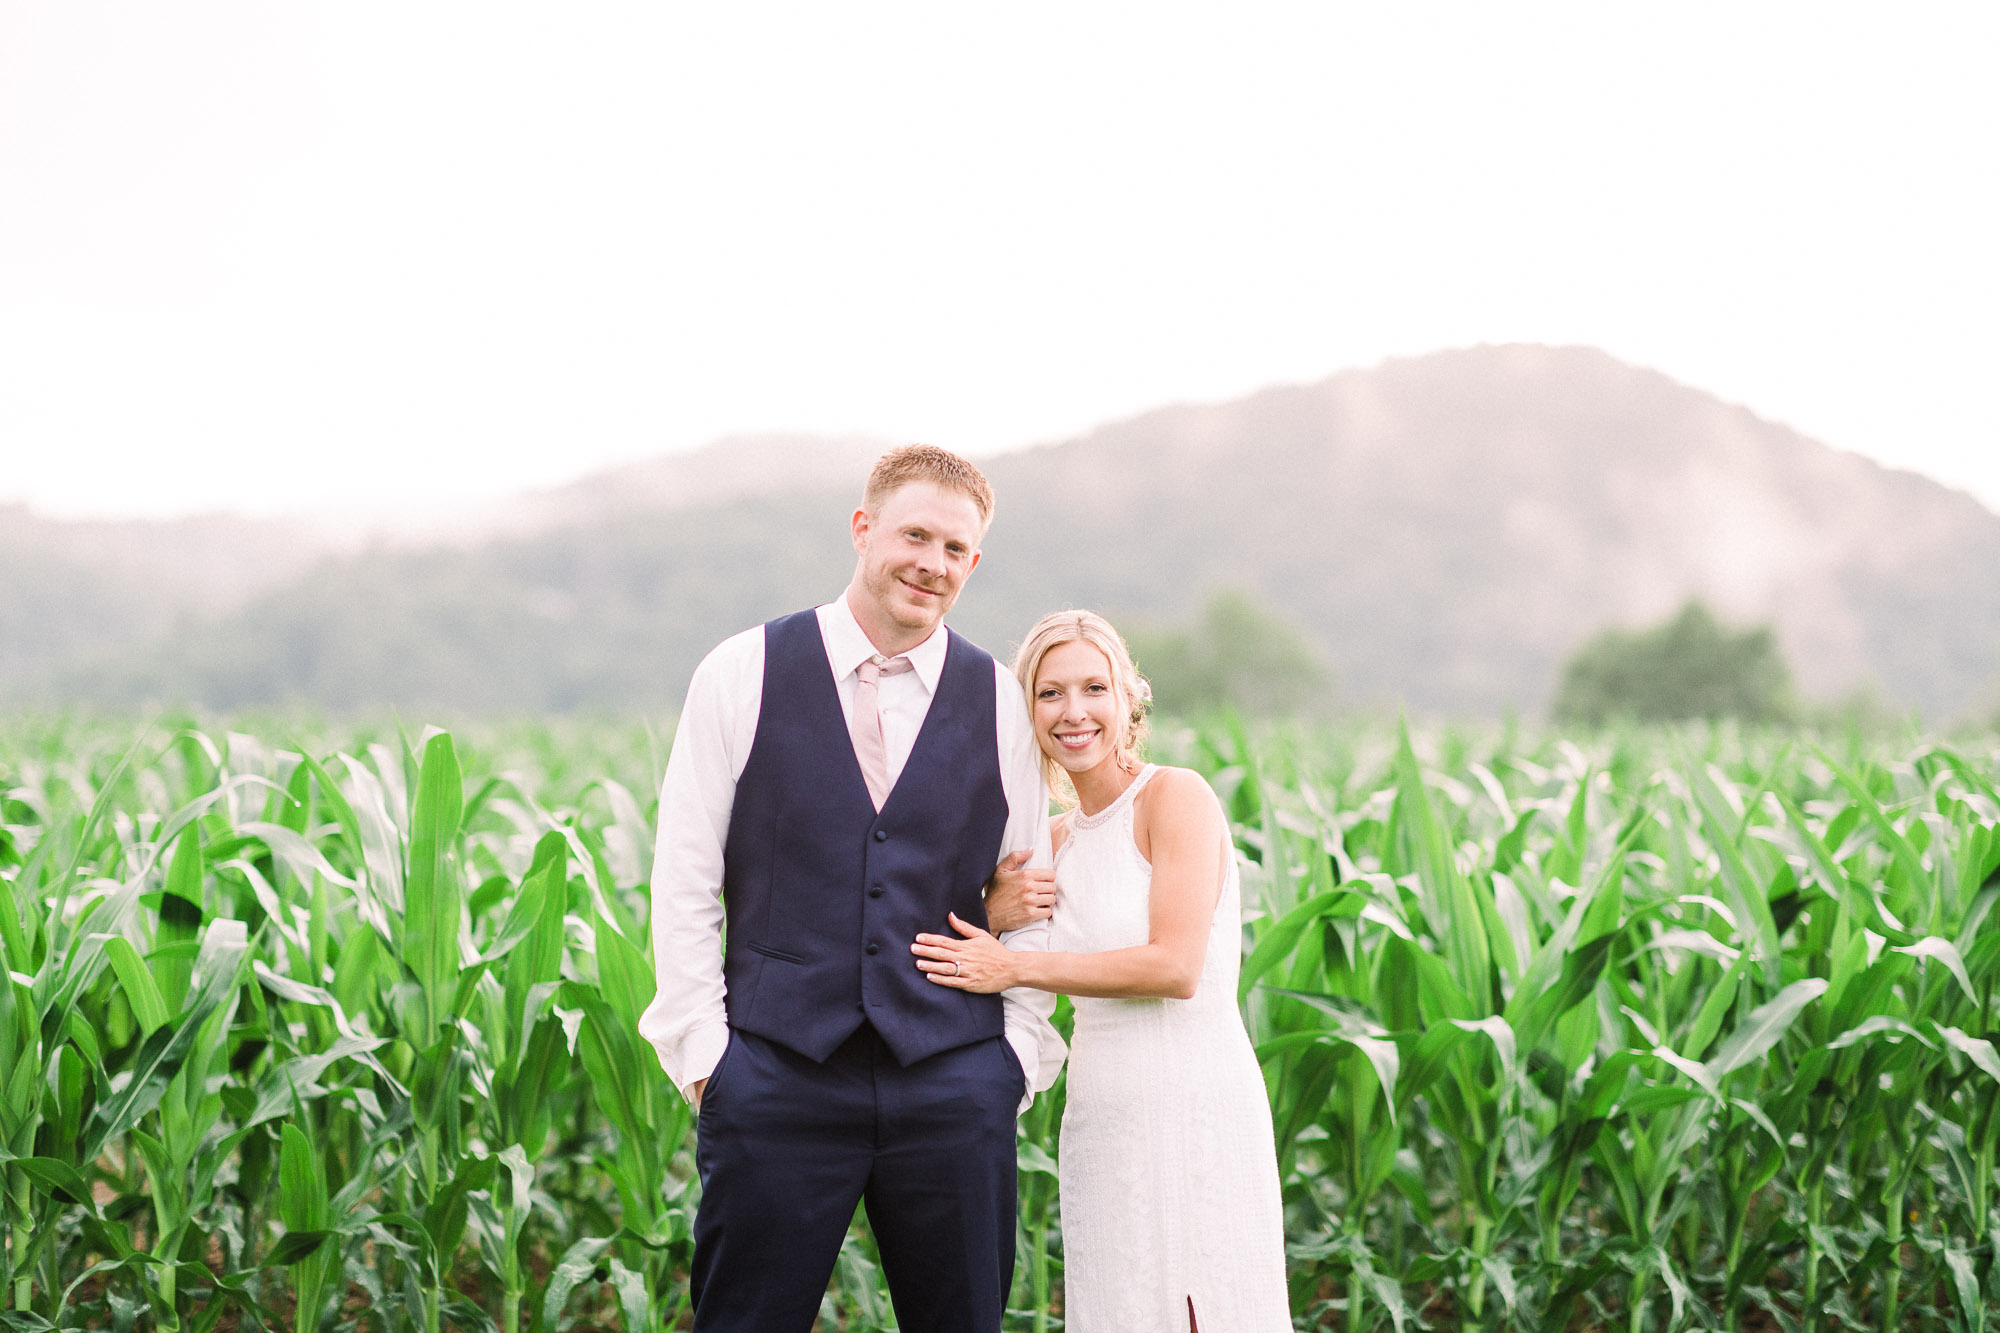 Muncy-backyard-farm-wedding-8200.jpg